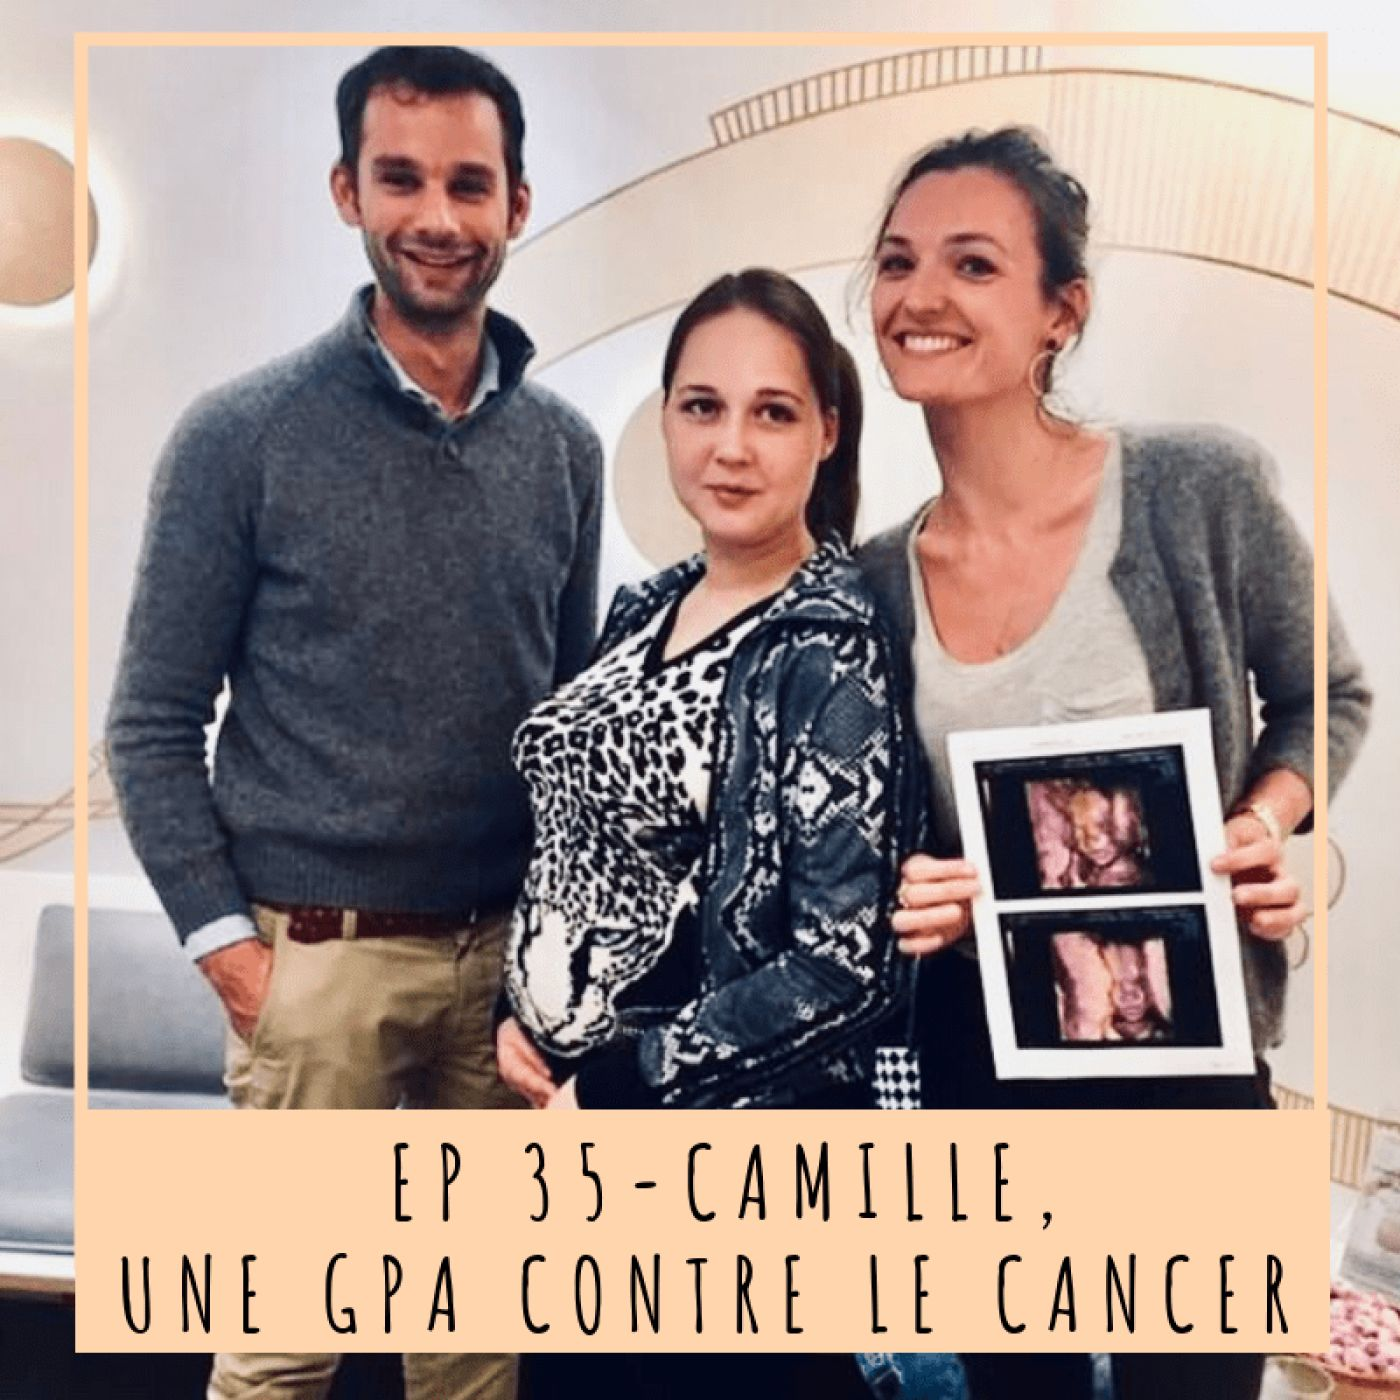 EP 35 - CAMILLE, UNE GPA CONTRE LE CANCER